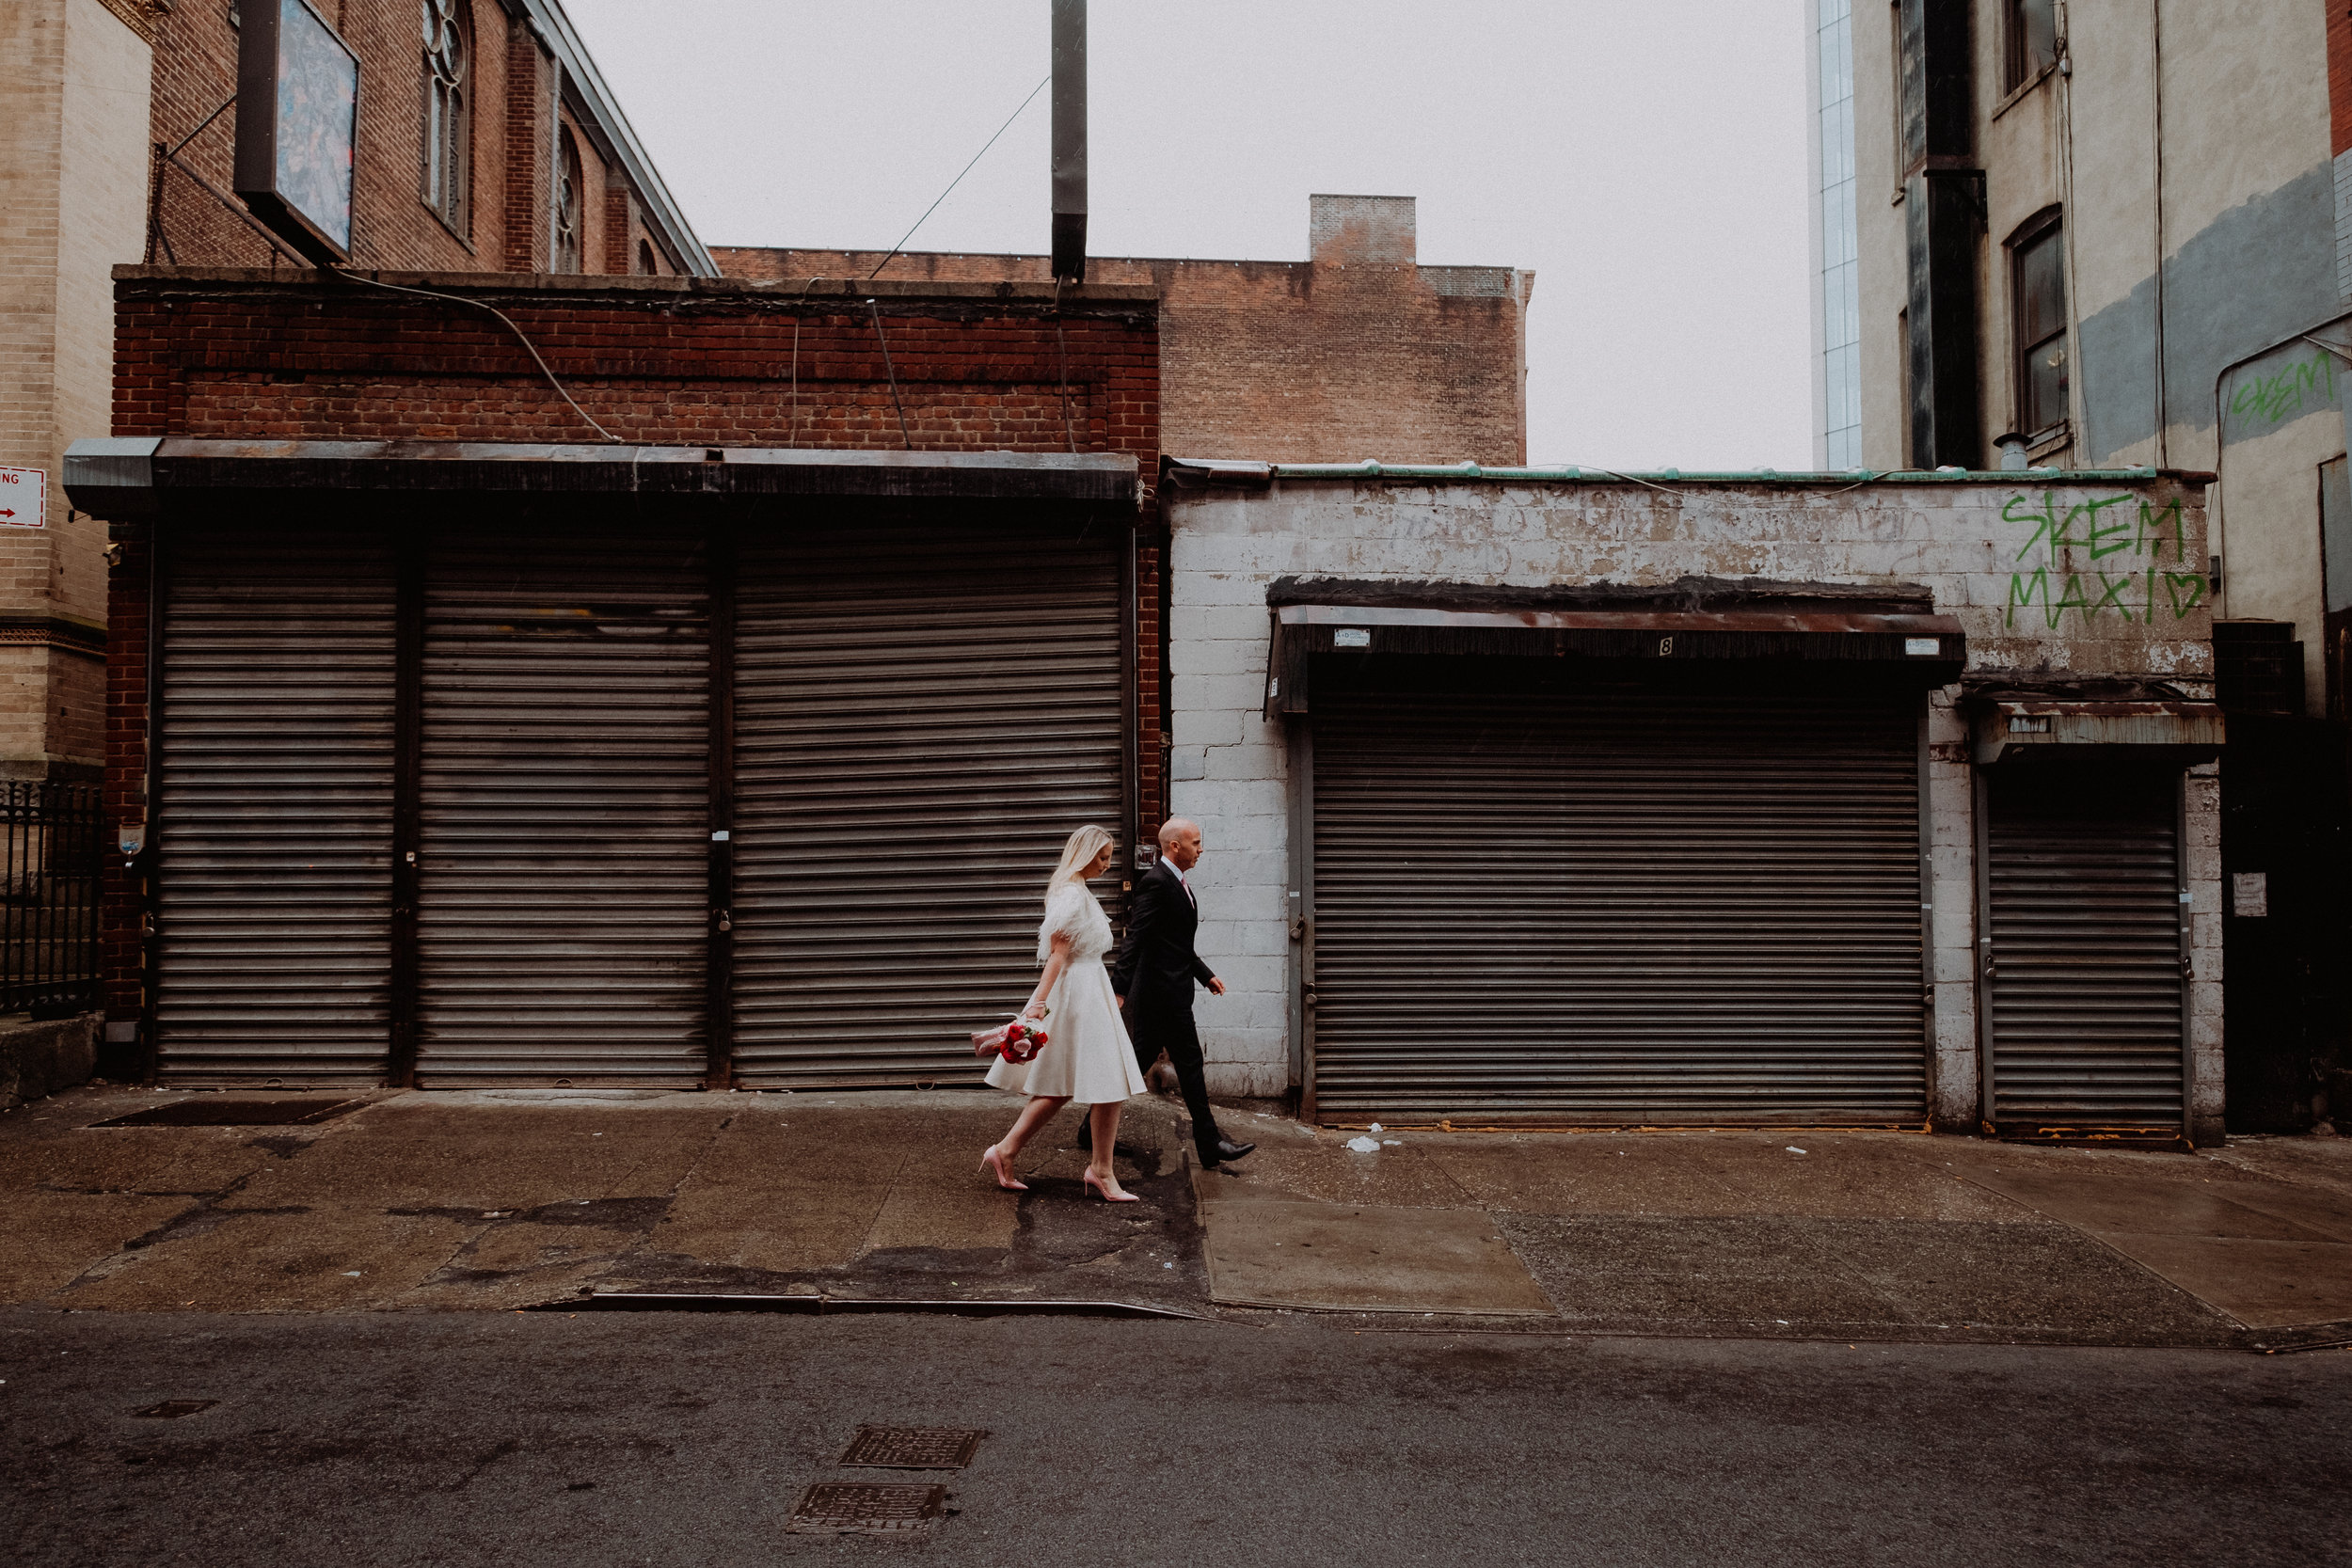 Brooklyn_City_Hall_Elopement_Photographer_Chellise_Michael_Photography258.JPG